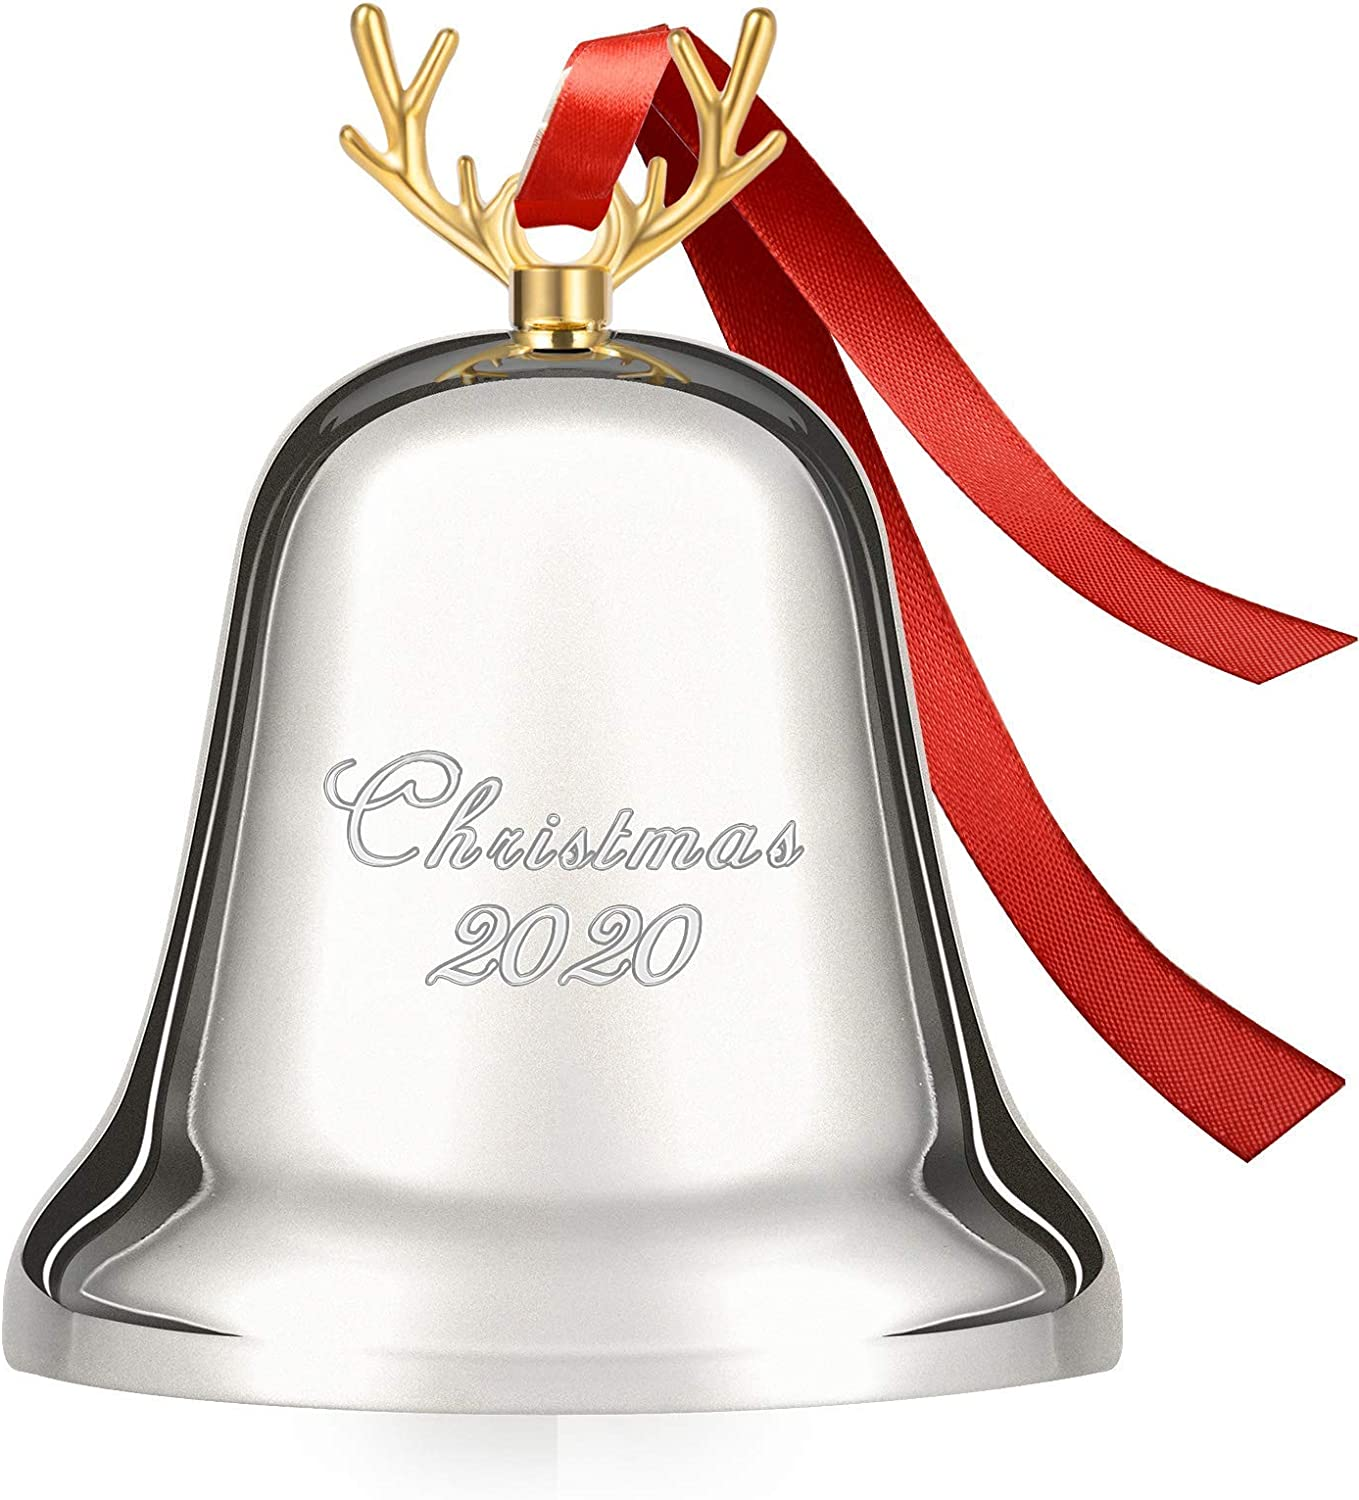 Koreno 2020 Annual Christmas Bell, Silver Bell Ornaments for Christmas Tree Decorations, Holiday Bell Jingle Bell for Anniversary with Ribbon & Gift Box - 1st Special Edition